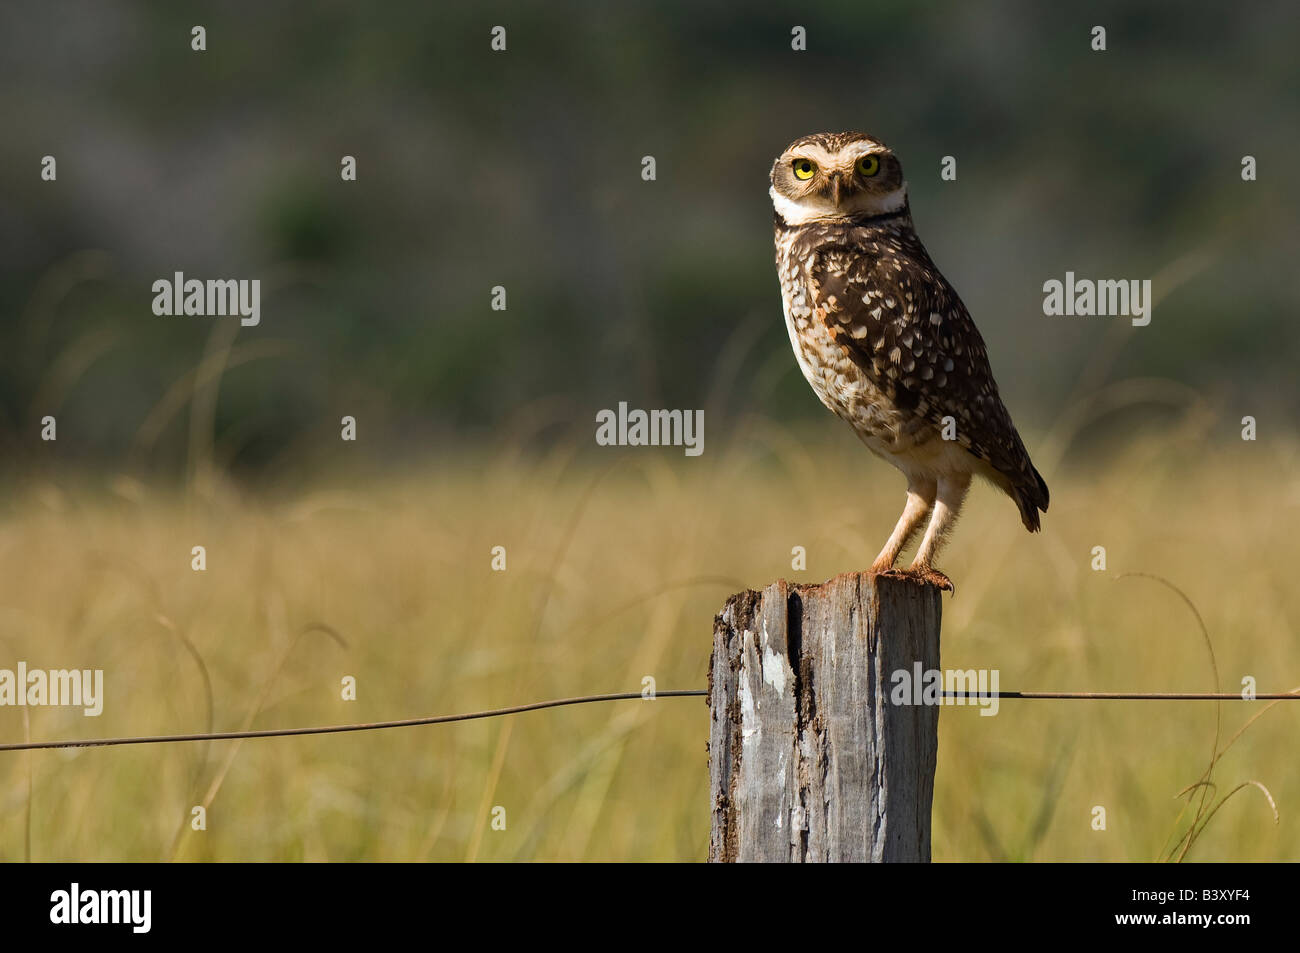 Burrowing Owl Athene cunicularia photographed in Mato Grosso do Sul Brazil - Stock Image